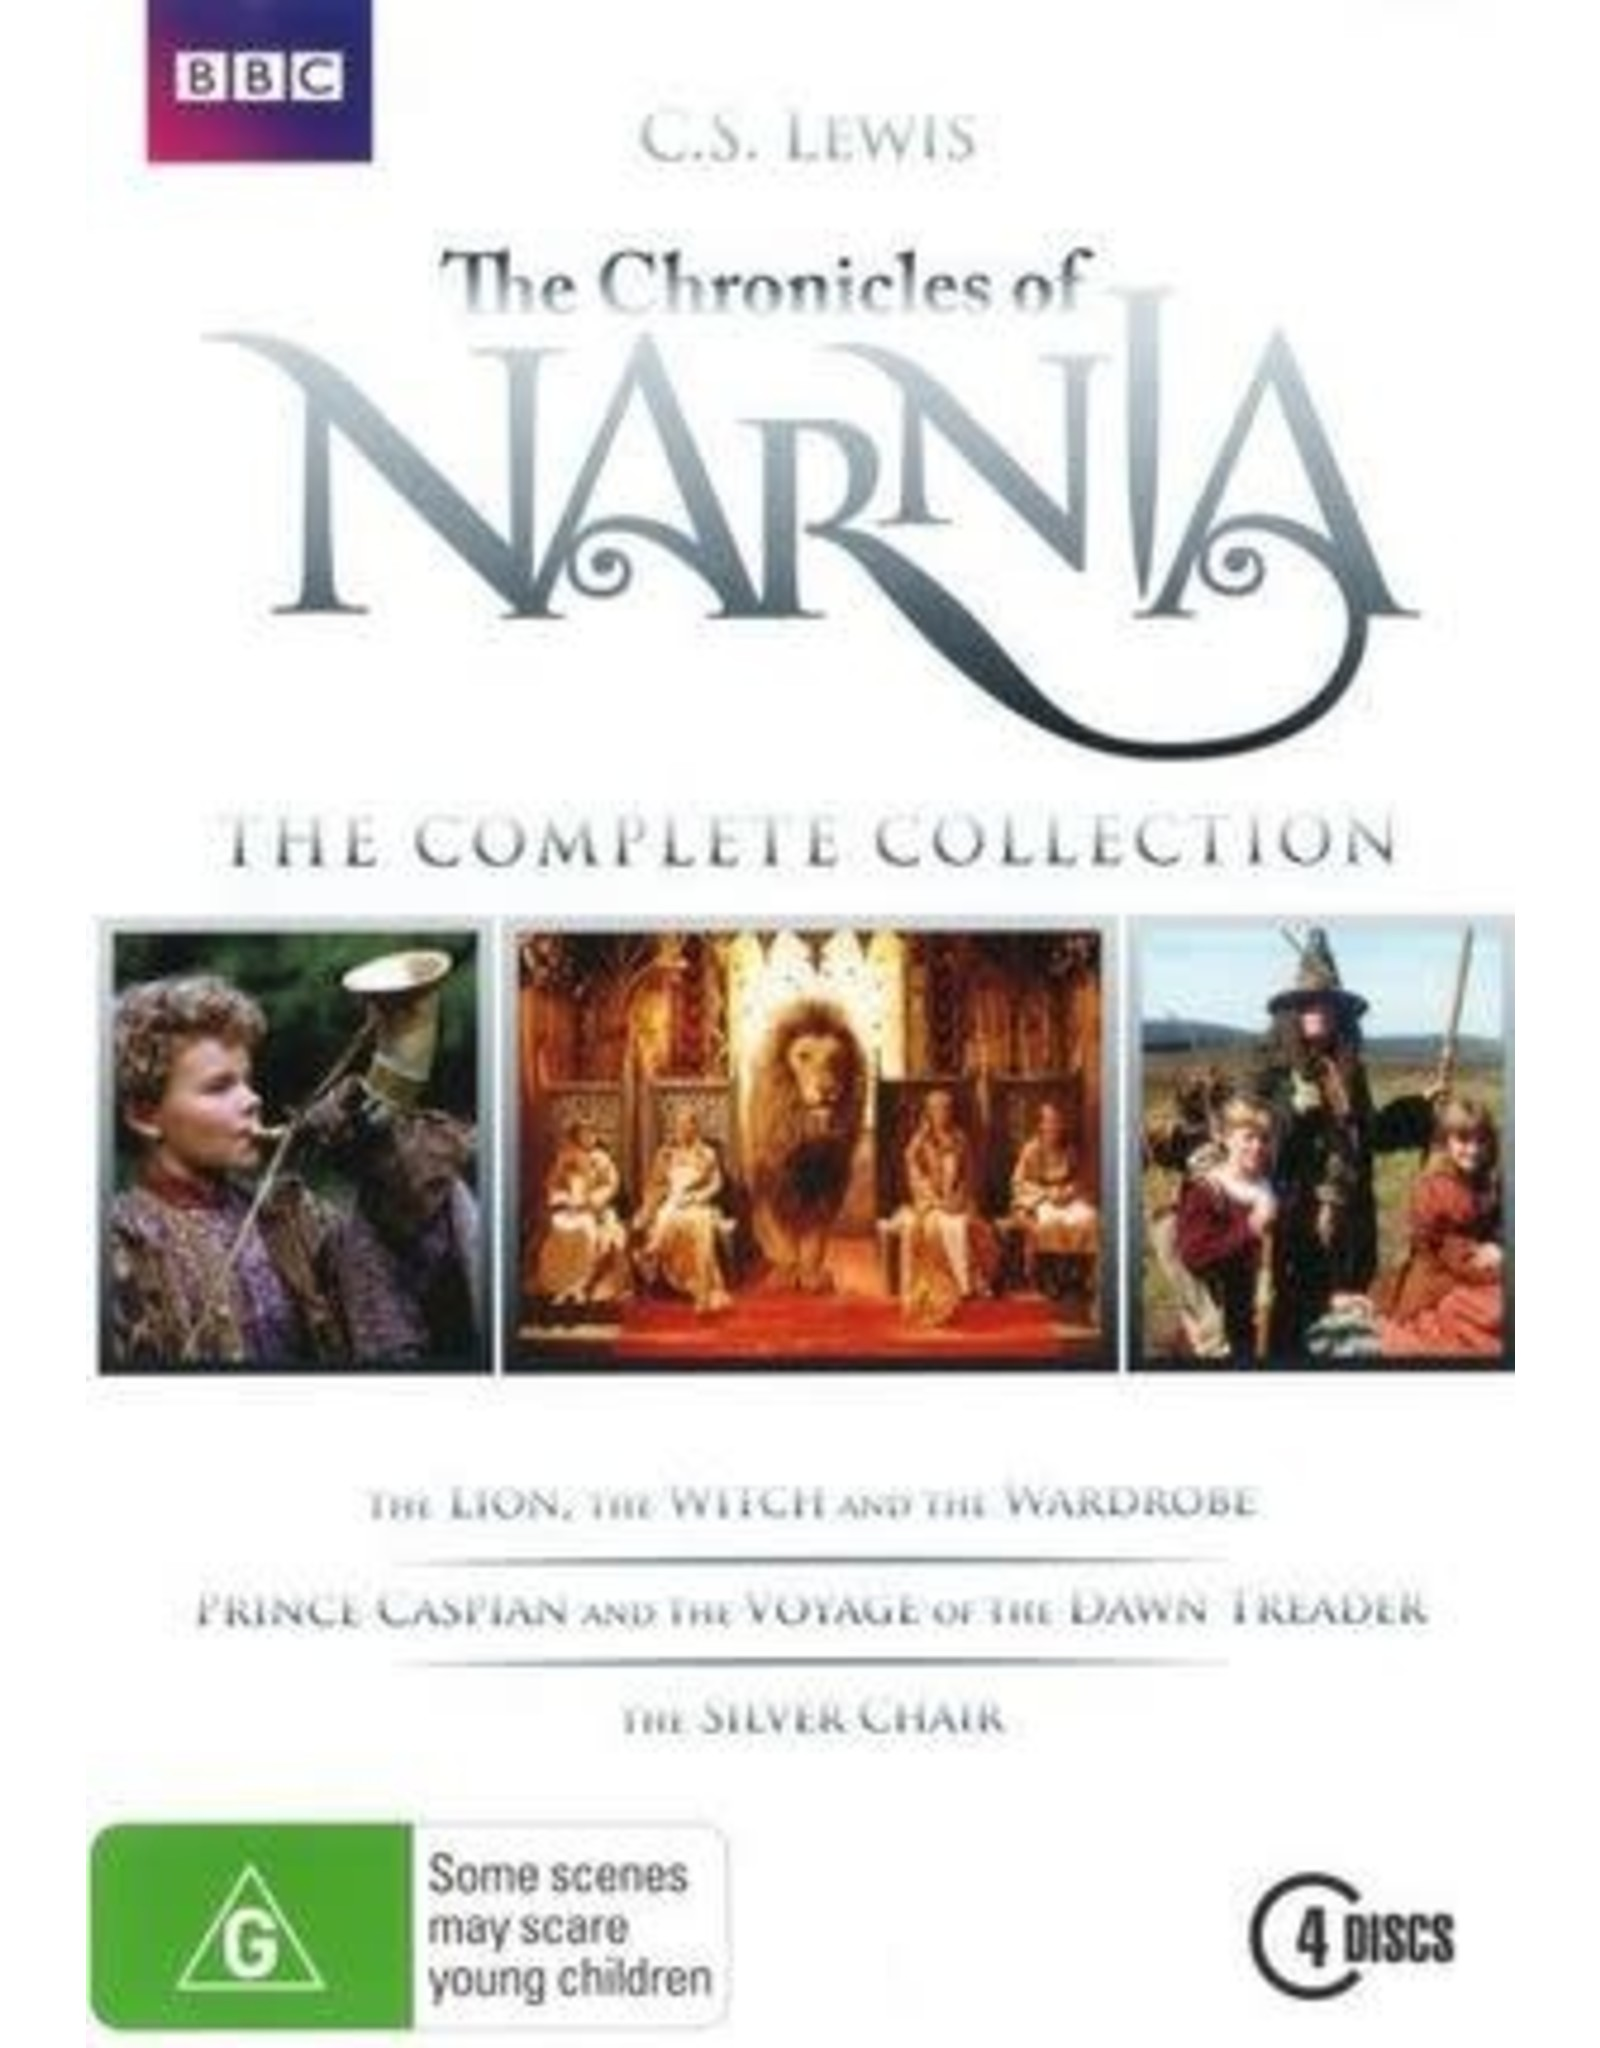 Lewis The Chronicles of Narnia, The Complete BBC Collection